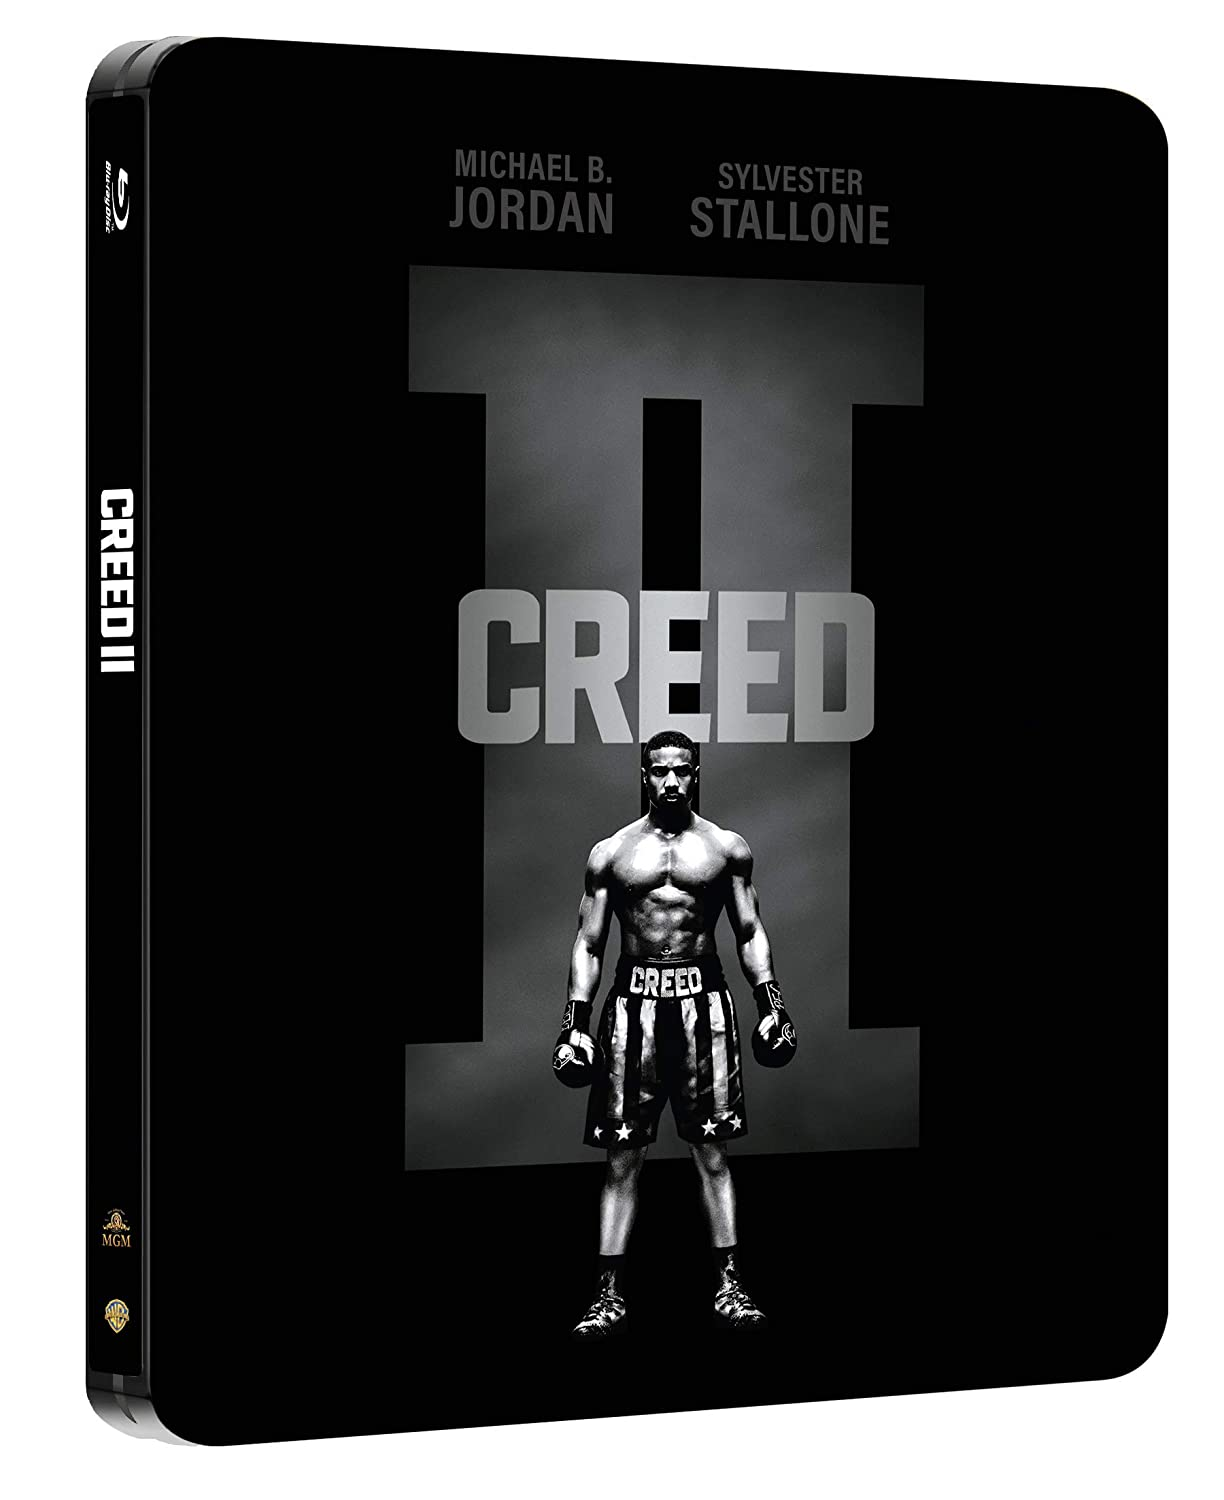 Creed II: Rocky's Legacy (Exklusiv Steelbook) - Ultra HD Blu-ray [4k + Blu-ray Disc]